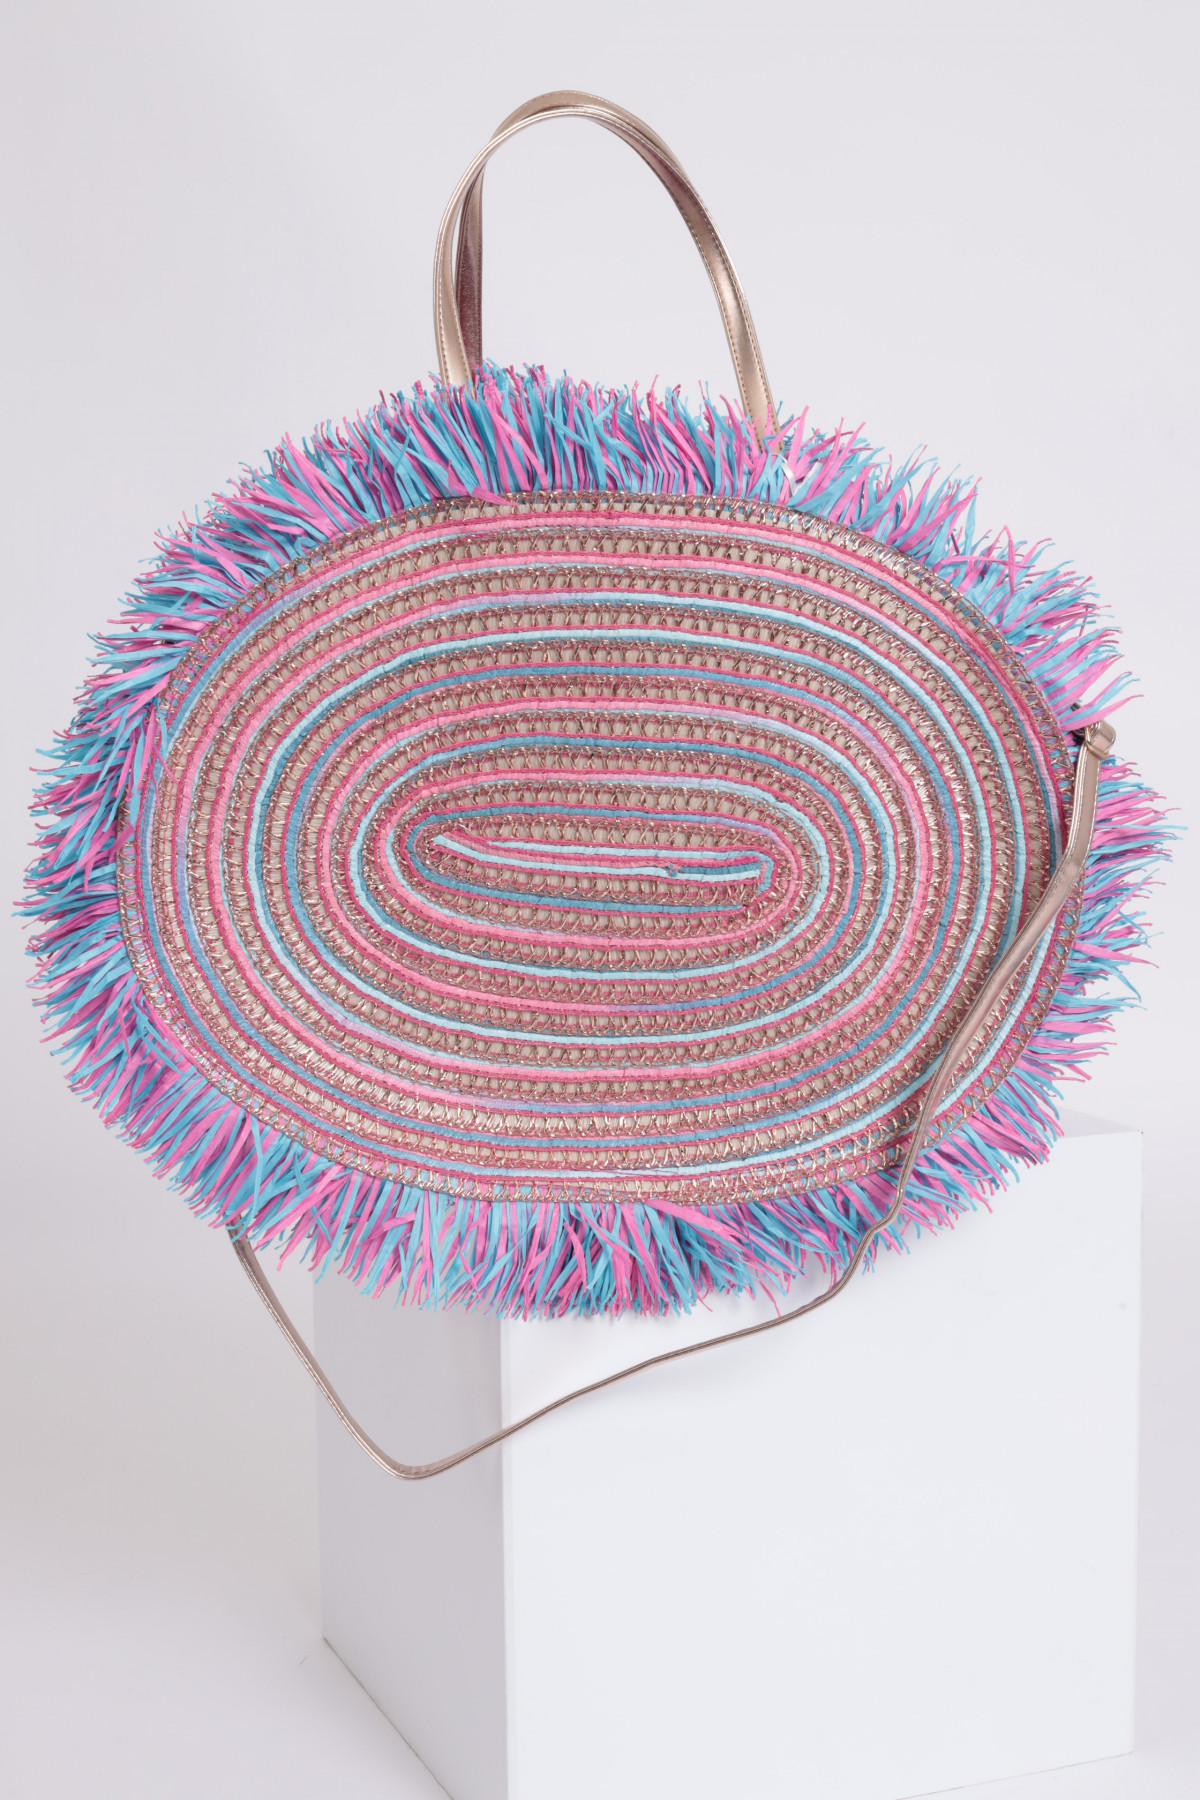 Circular Straw Bag with Fringes